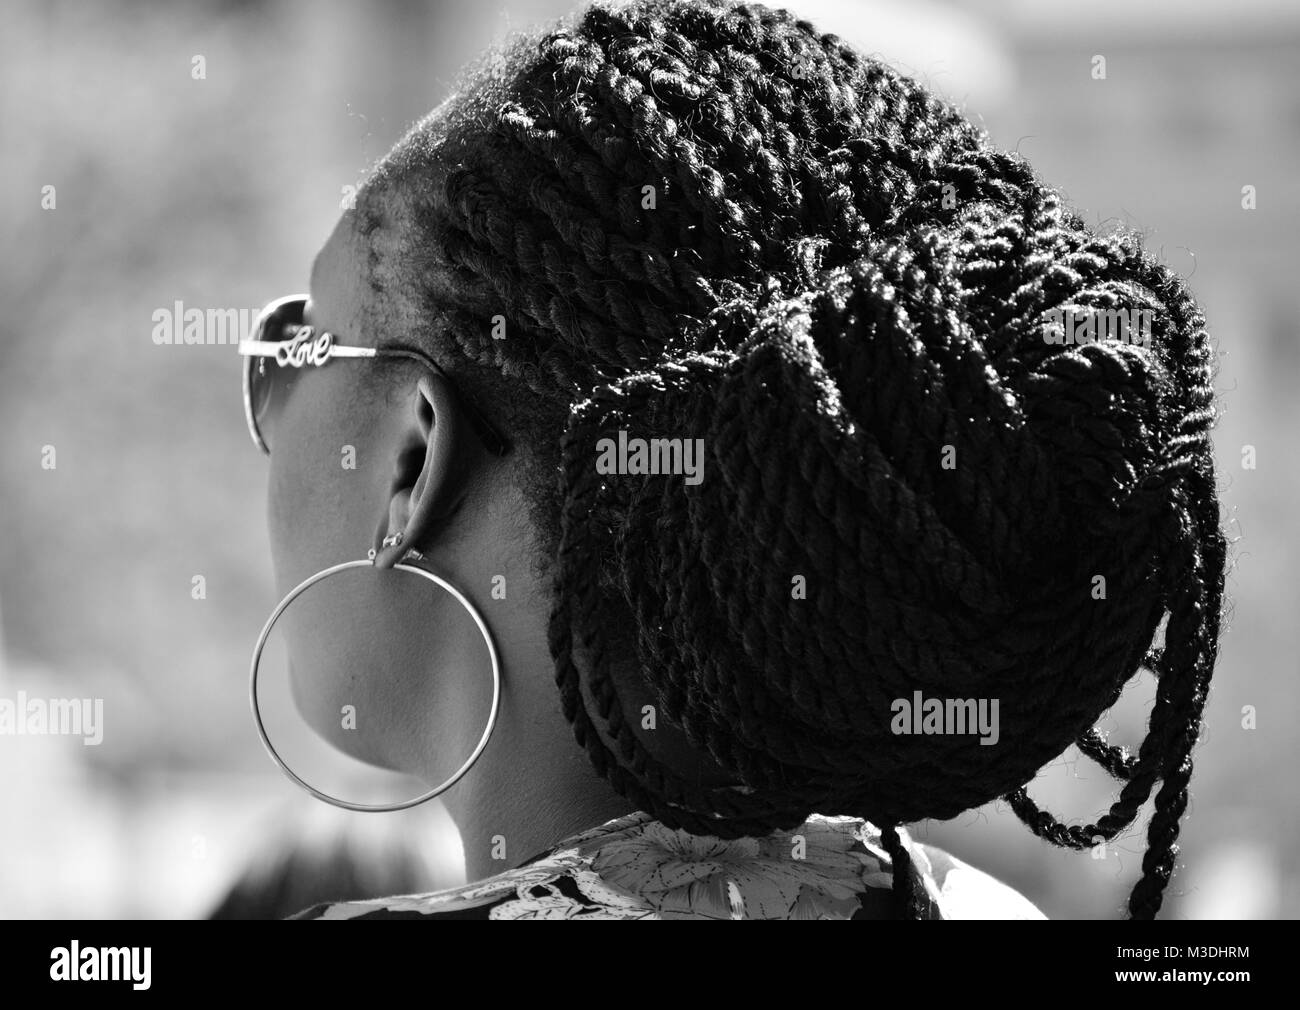 Black and White side profile of African American woman with braids and big ear rings - Stock Image